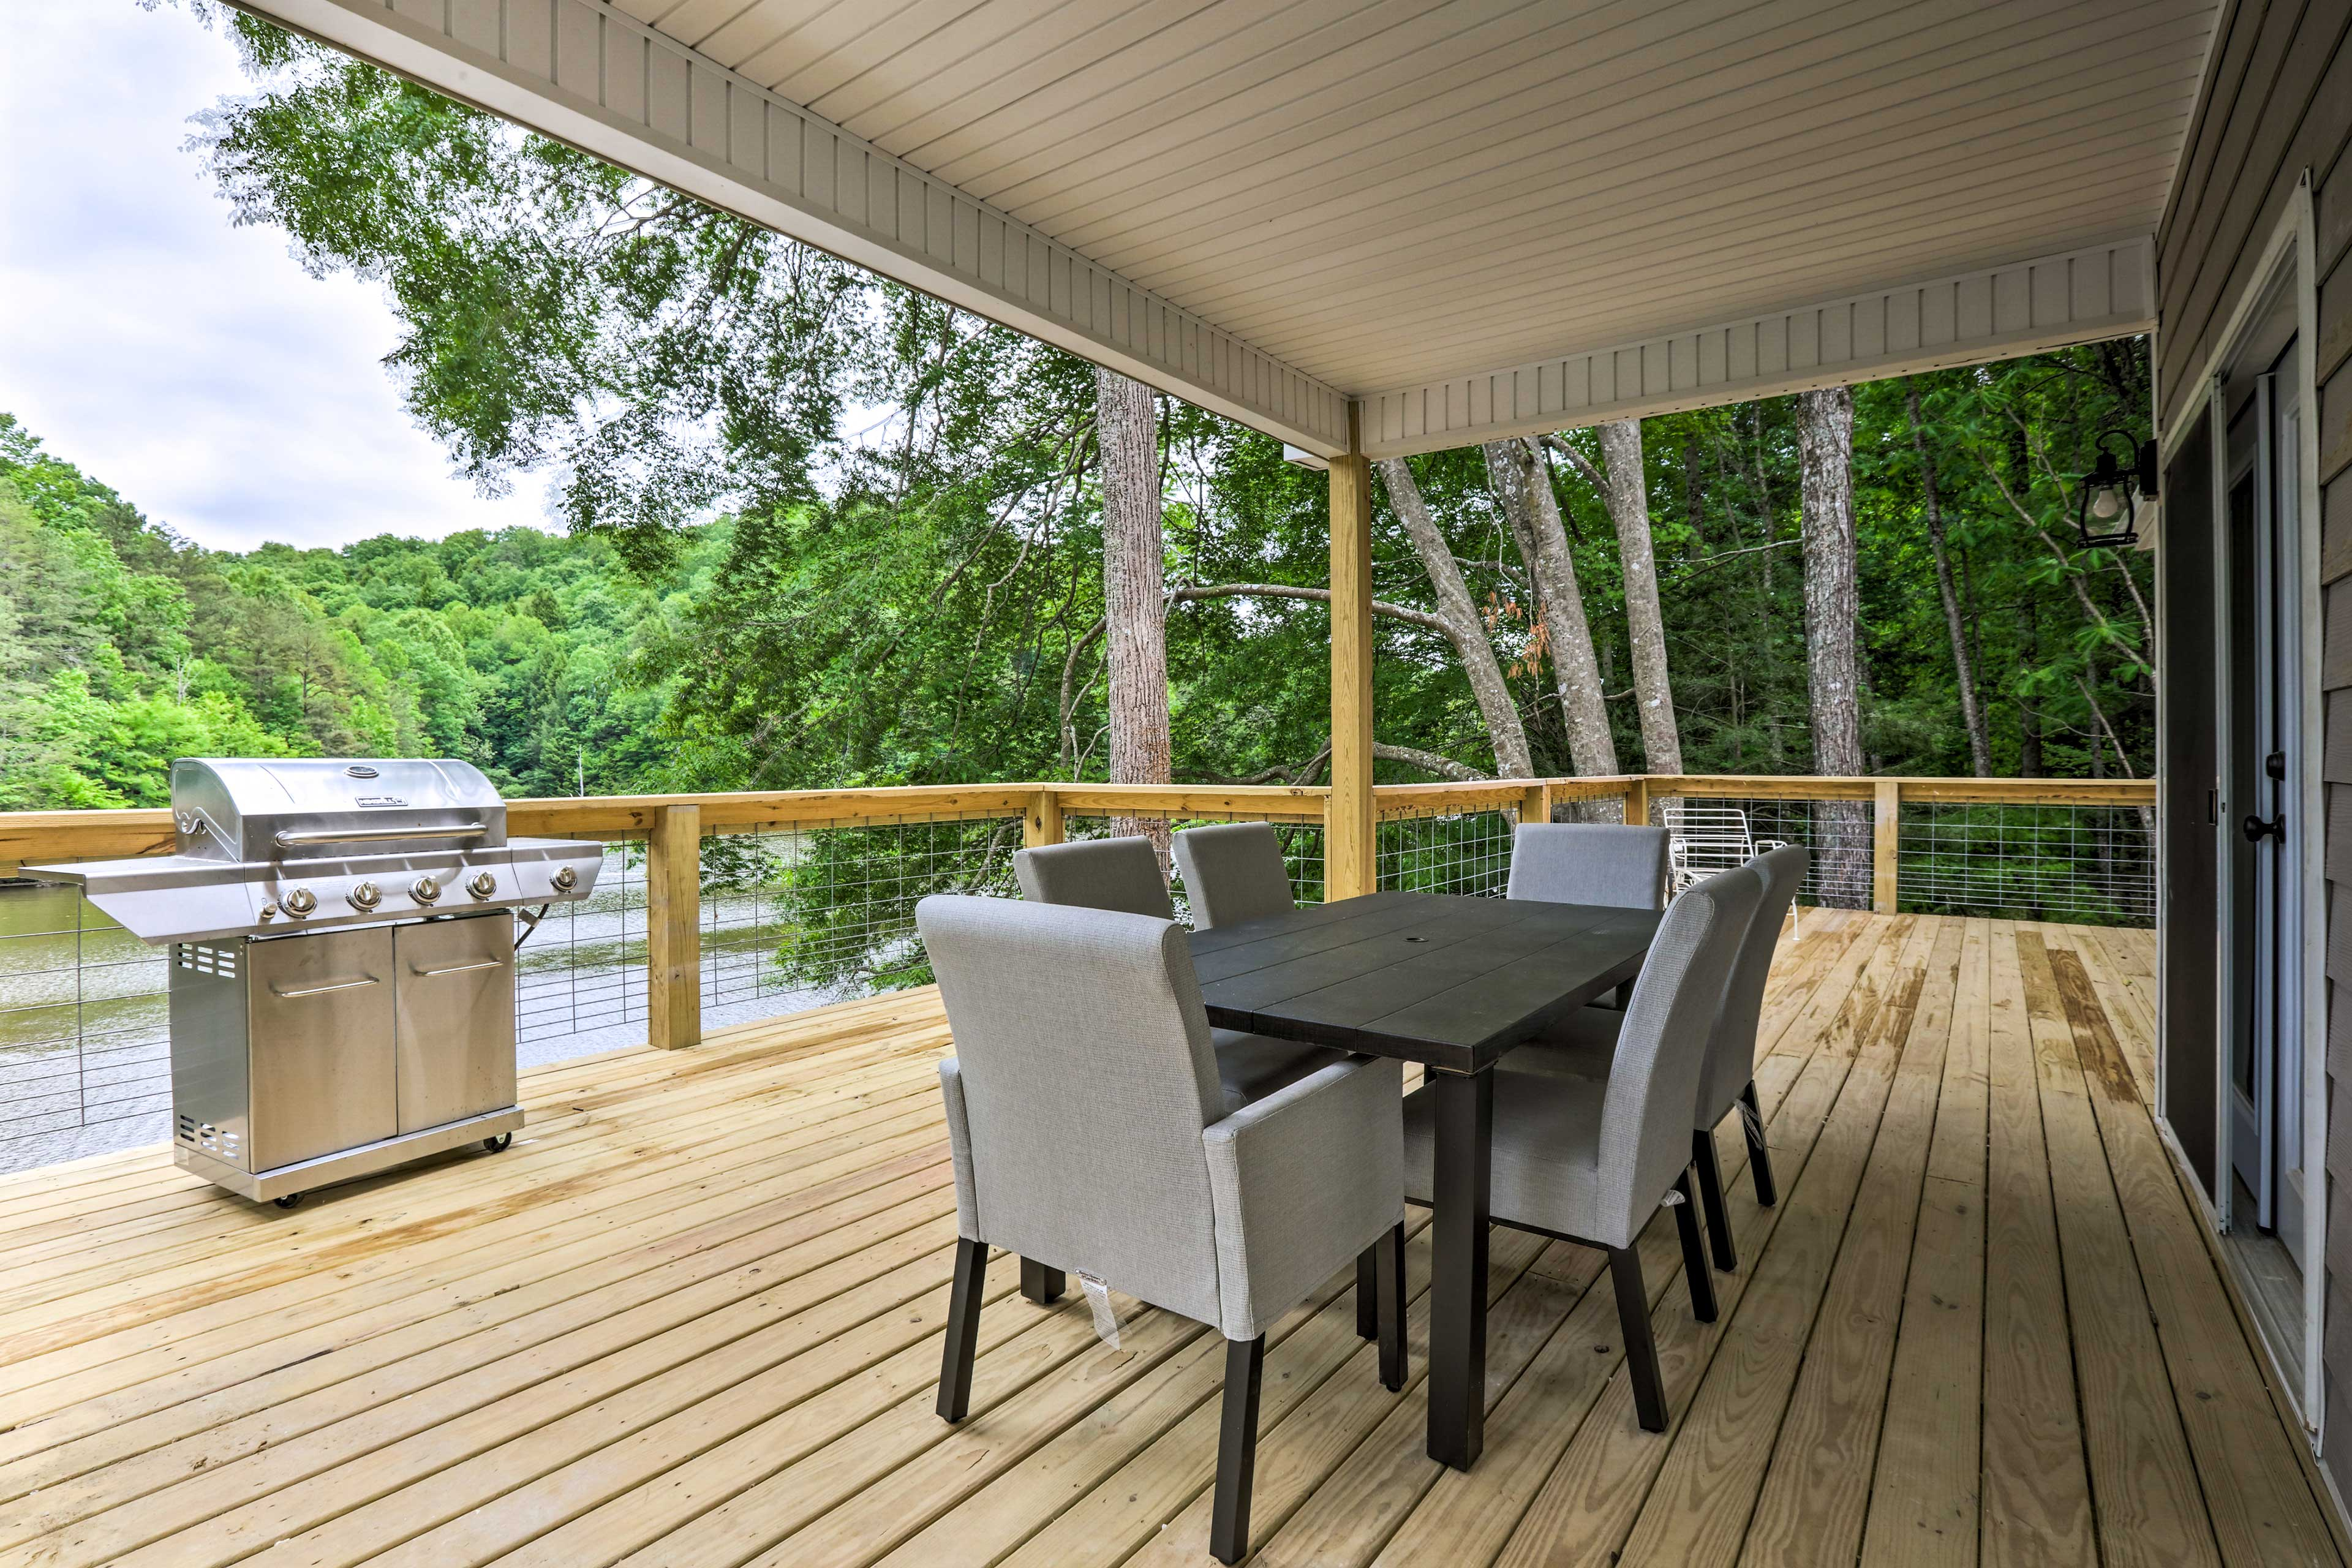 Wraparound Deck | Dining Area | Grilling Station